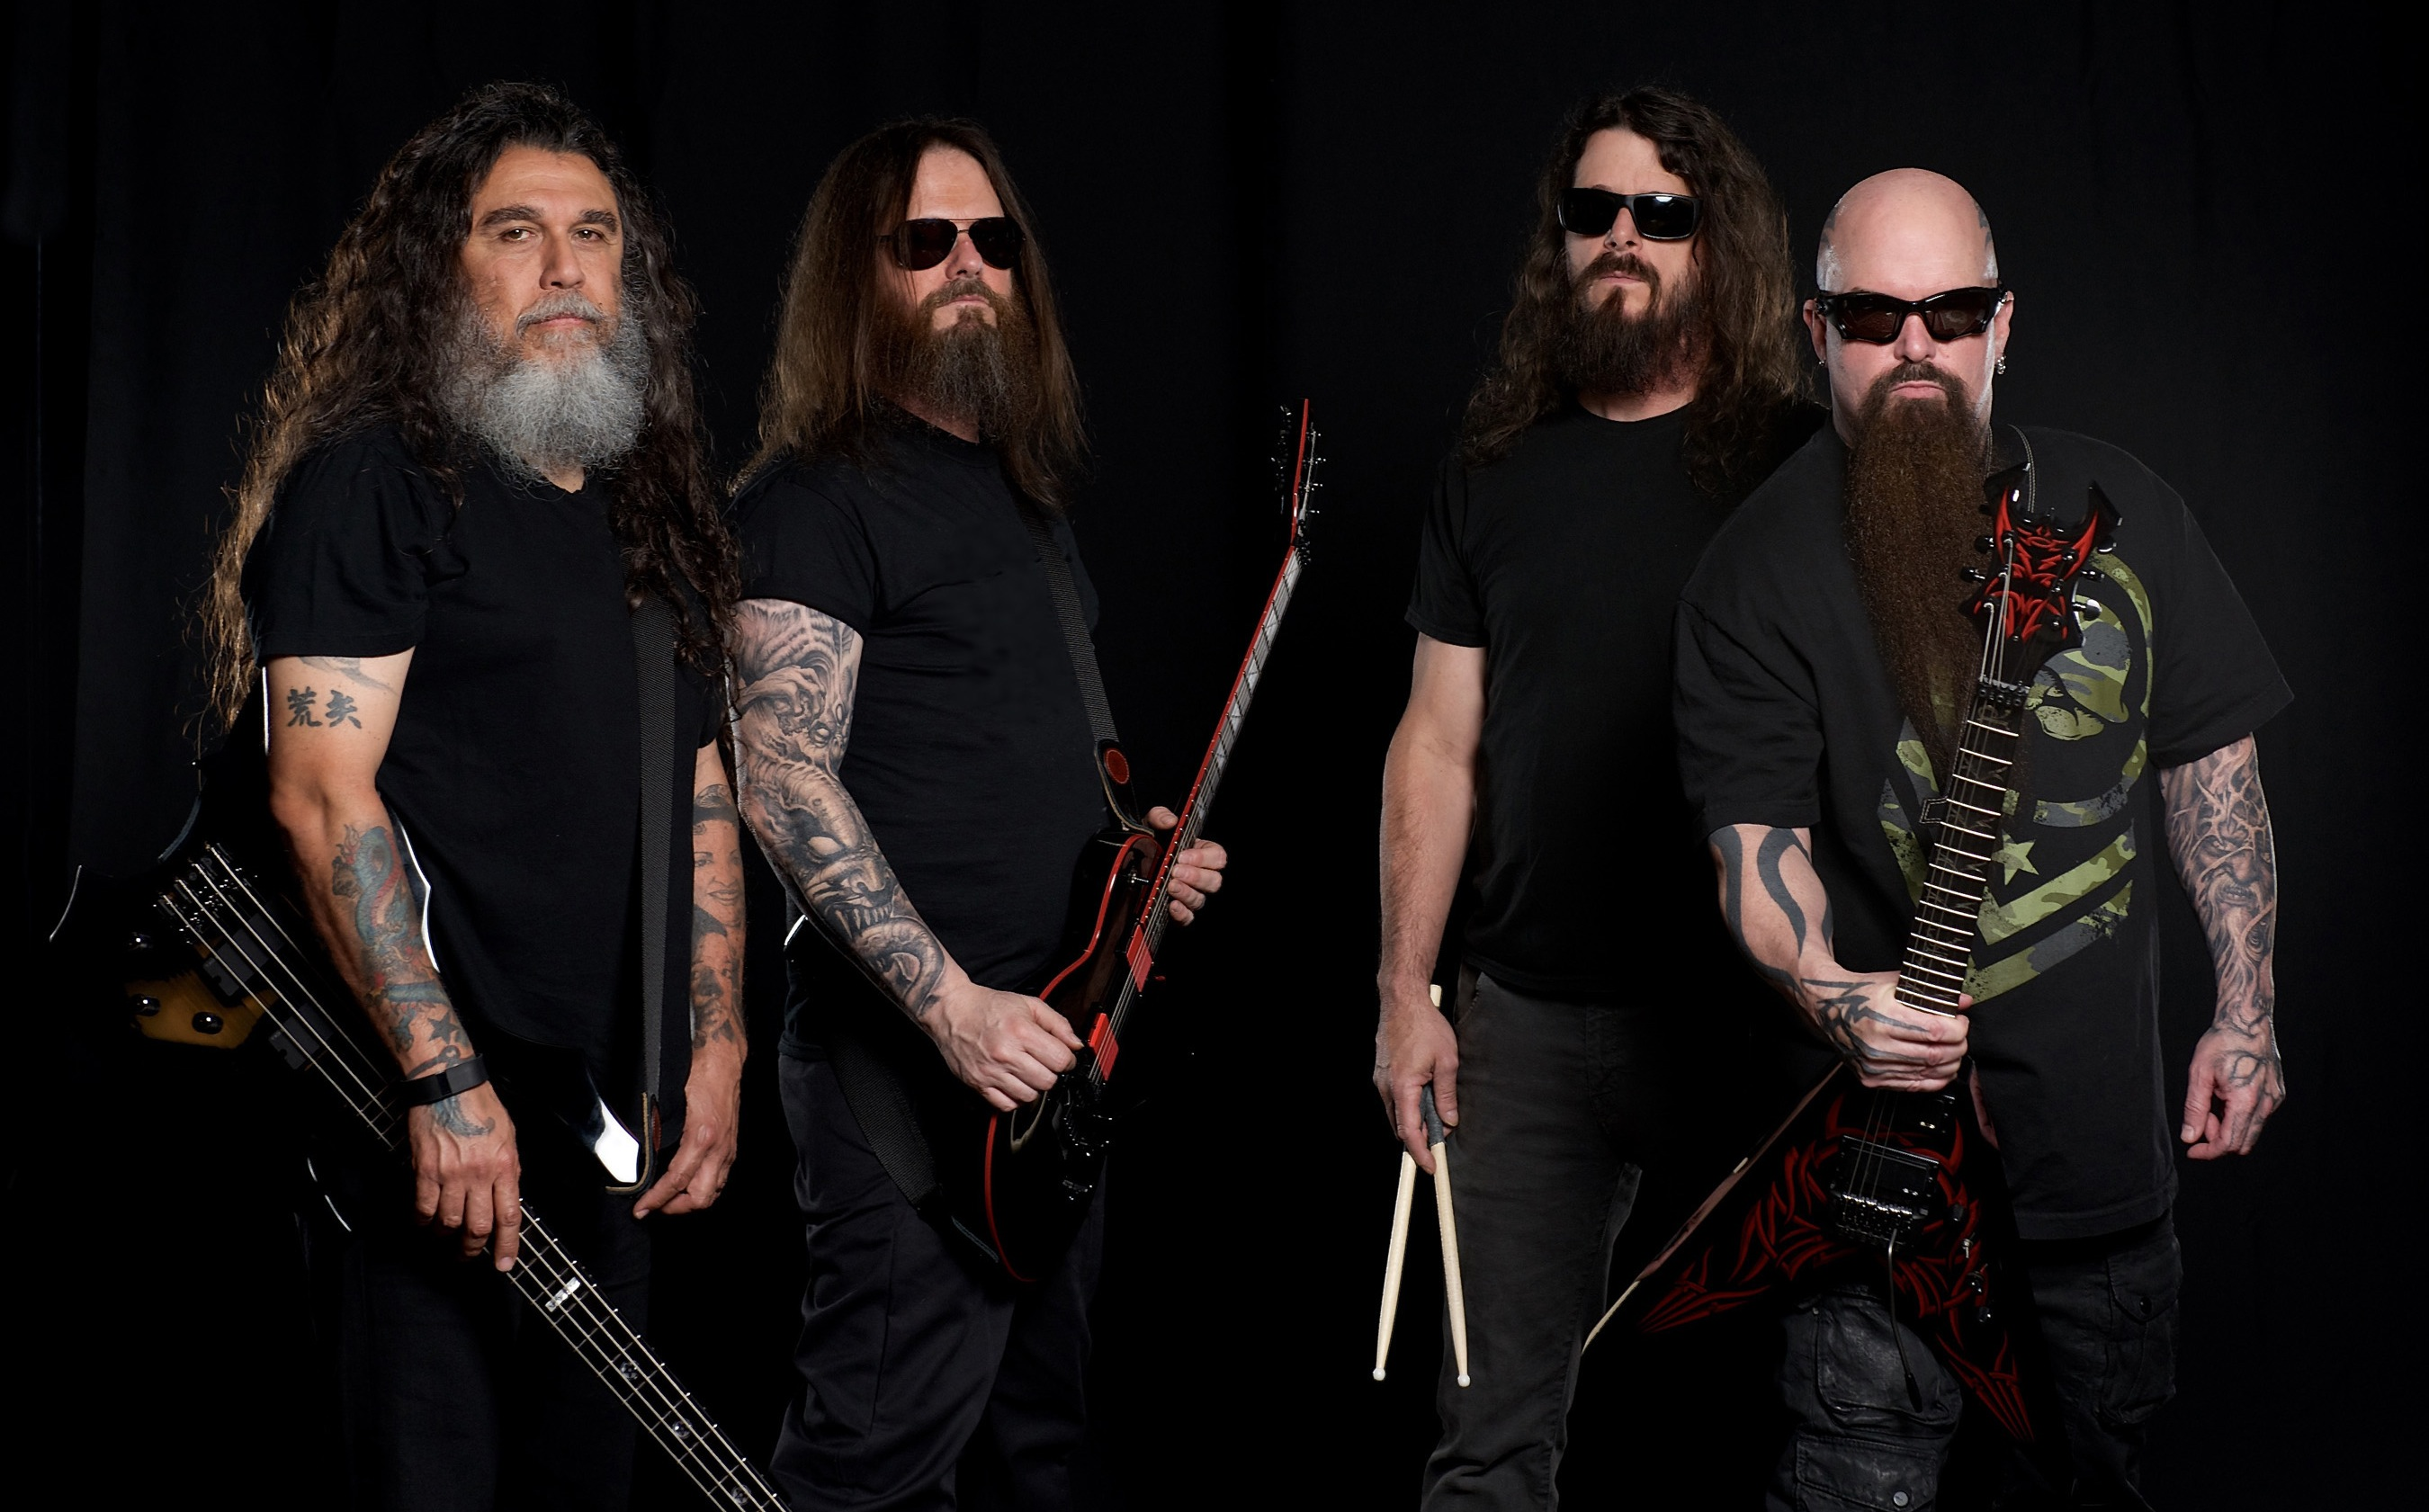 Tom Araya, Gary Holt, Paul Bostaph y Kerry King de Slayr.